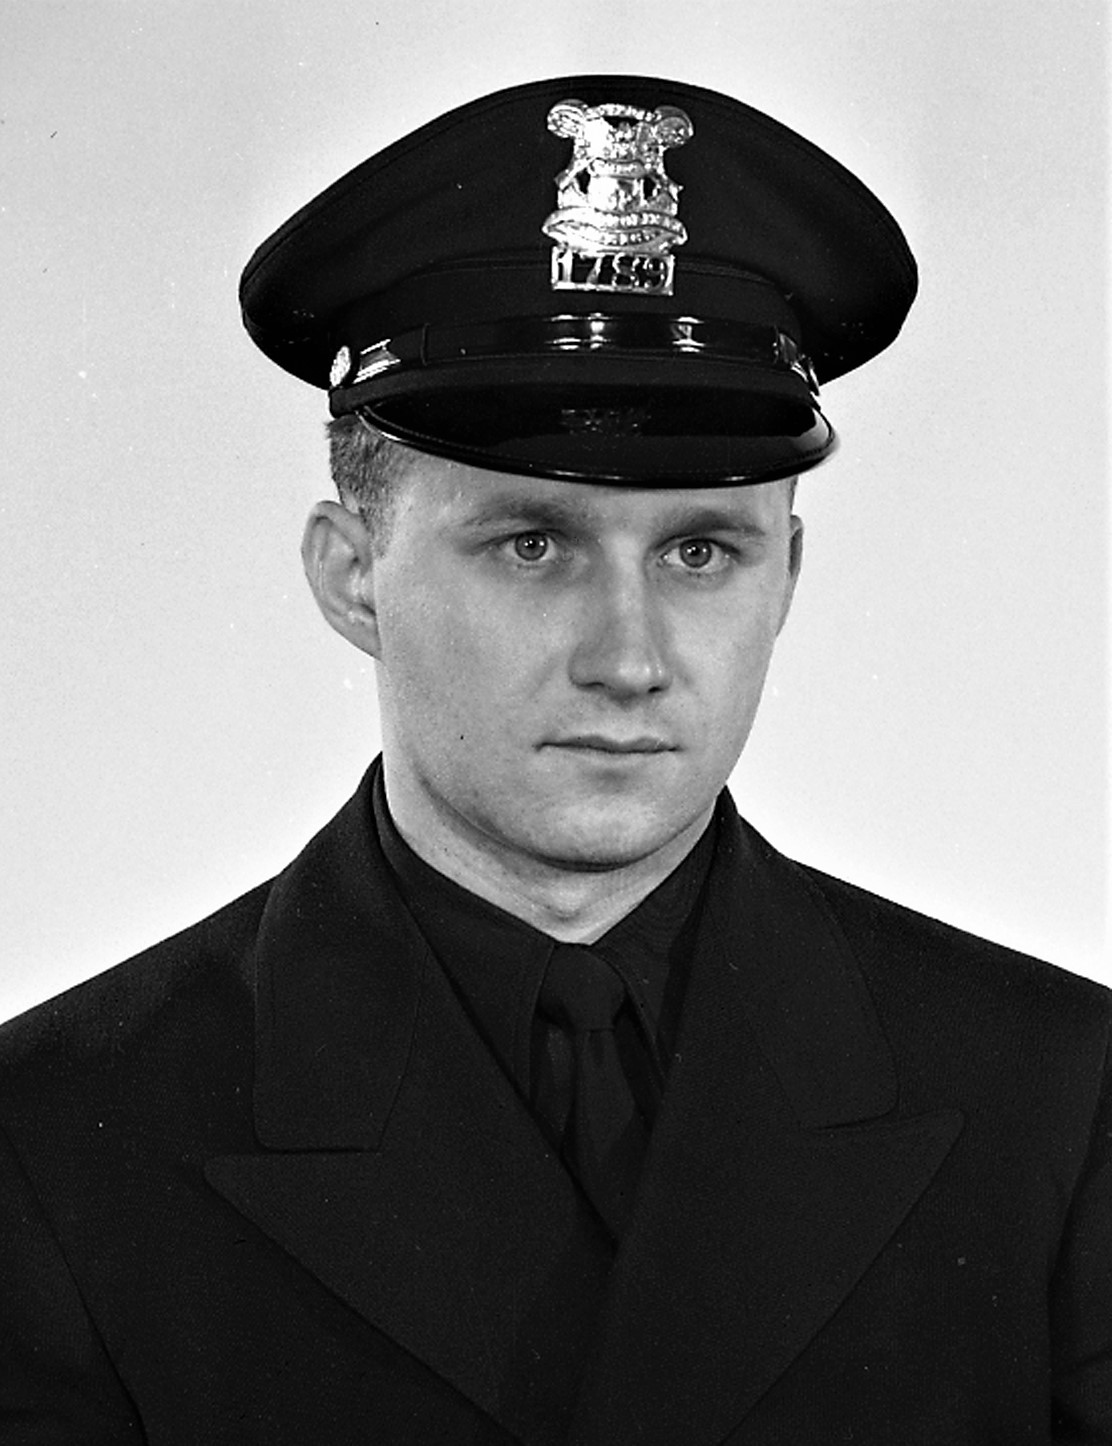 Police Officer John J. Hartenstein | Detroit Police Department, Michigan